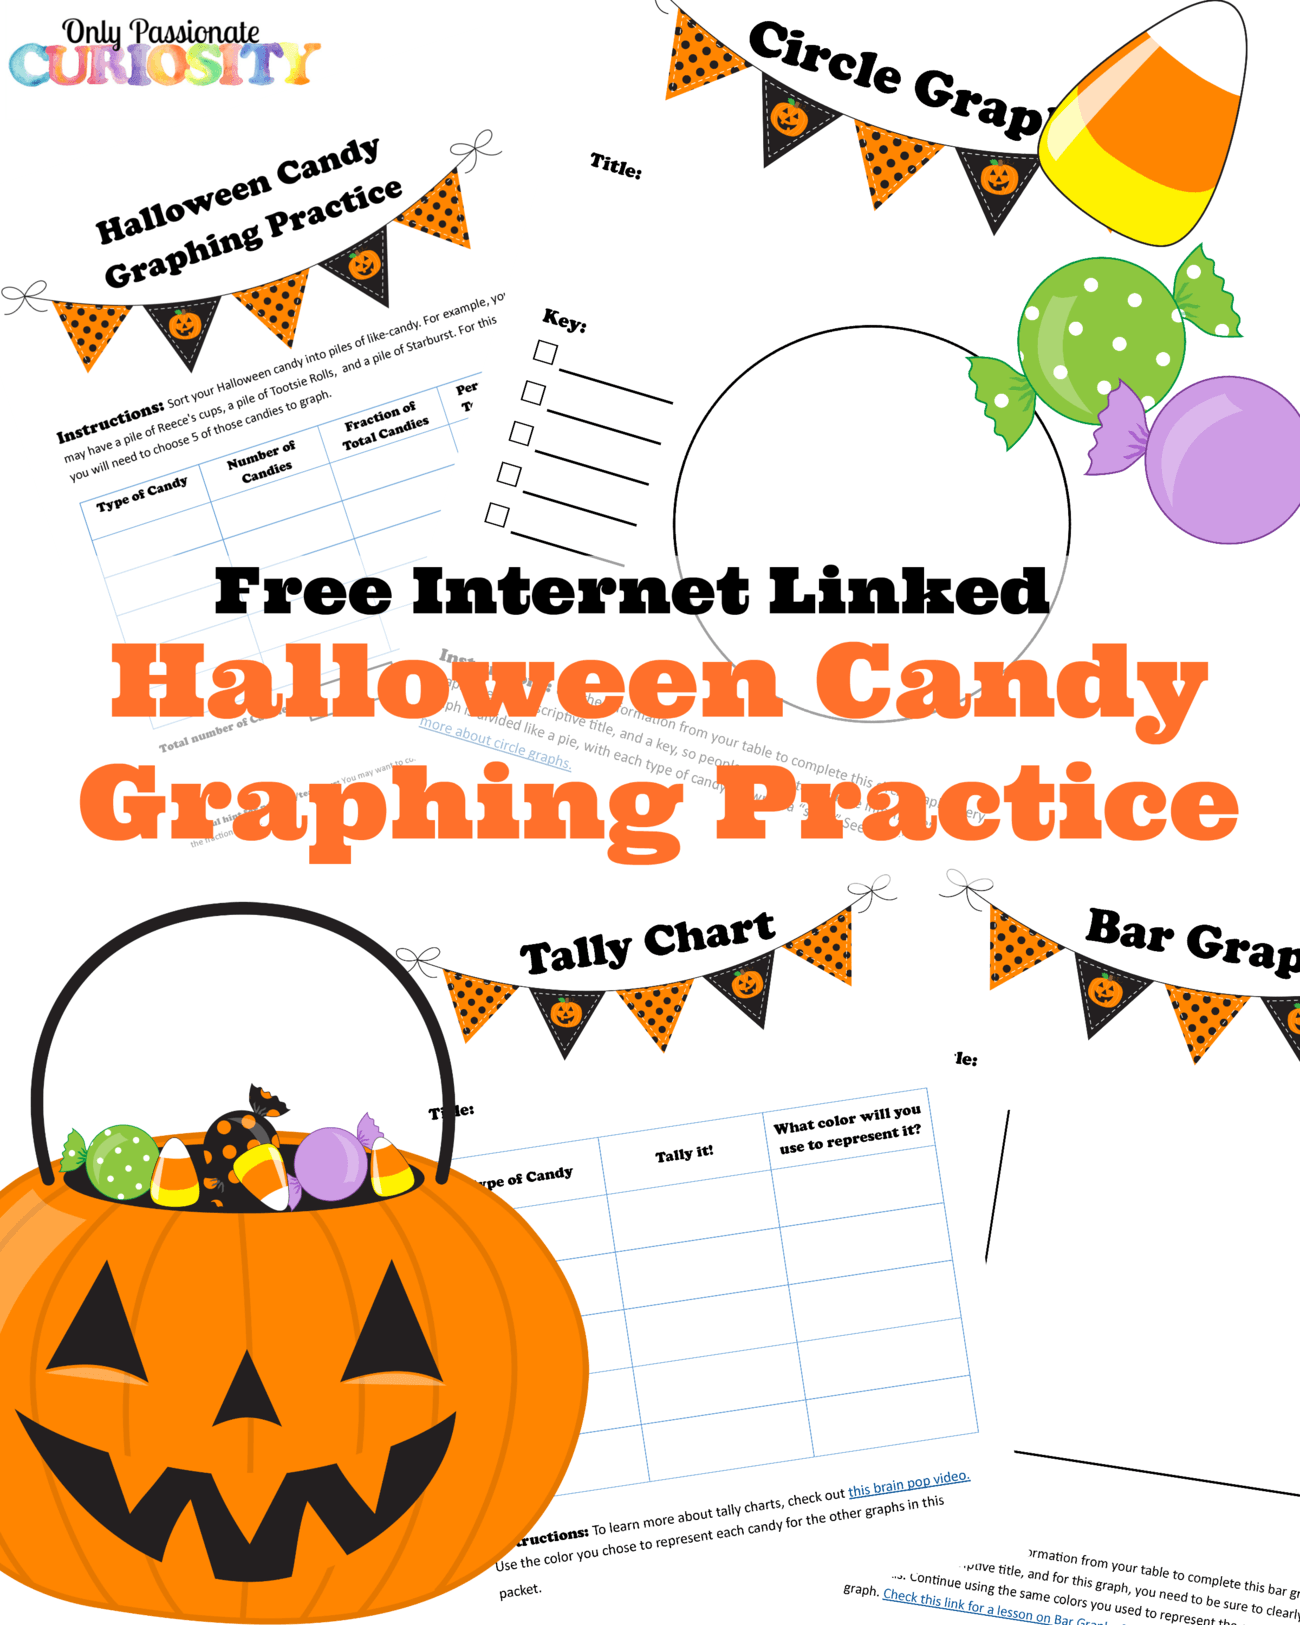 Halloween Candy Graphing Practice {Free Printable}